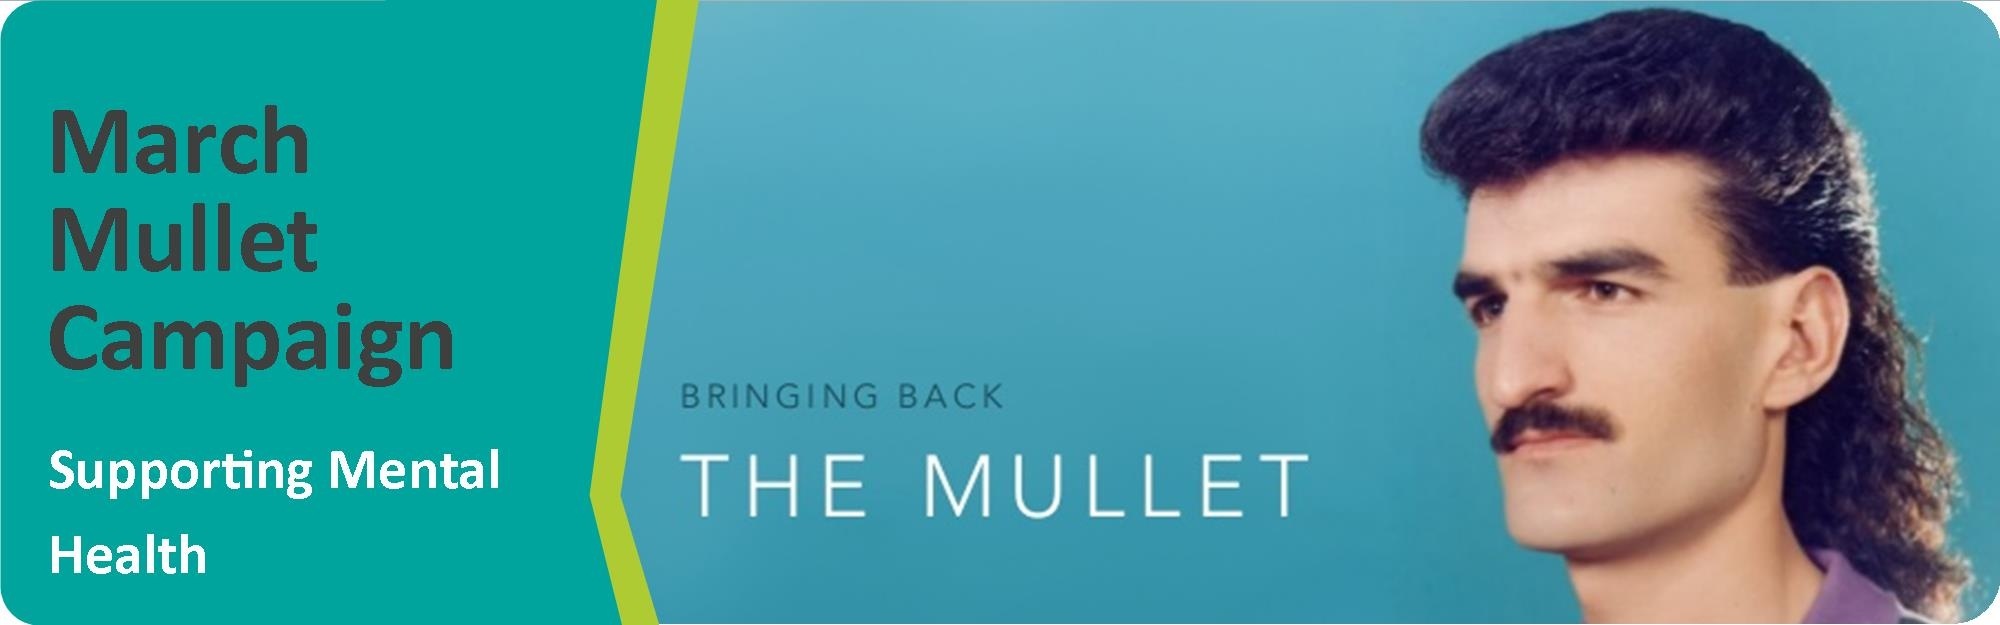 Mullets Are Back Aimed at Ending the Stigma Around Mental Health